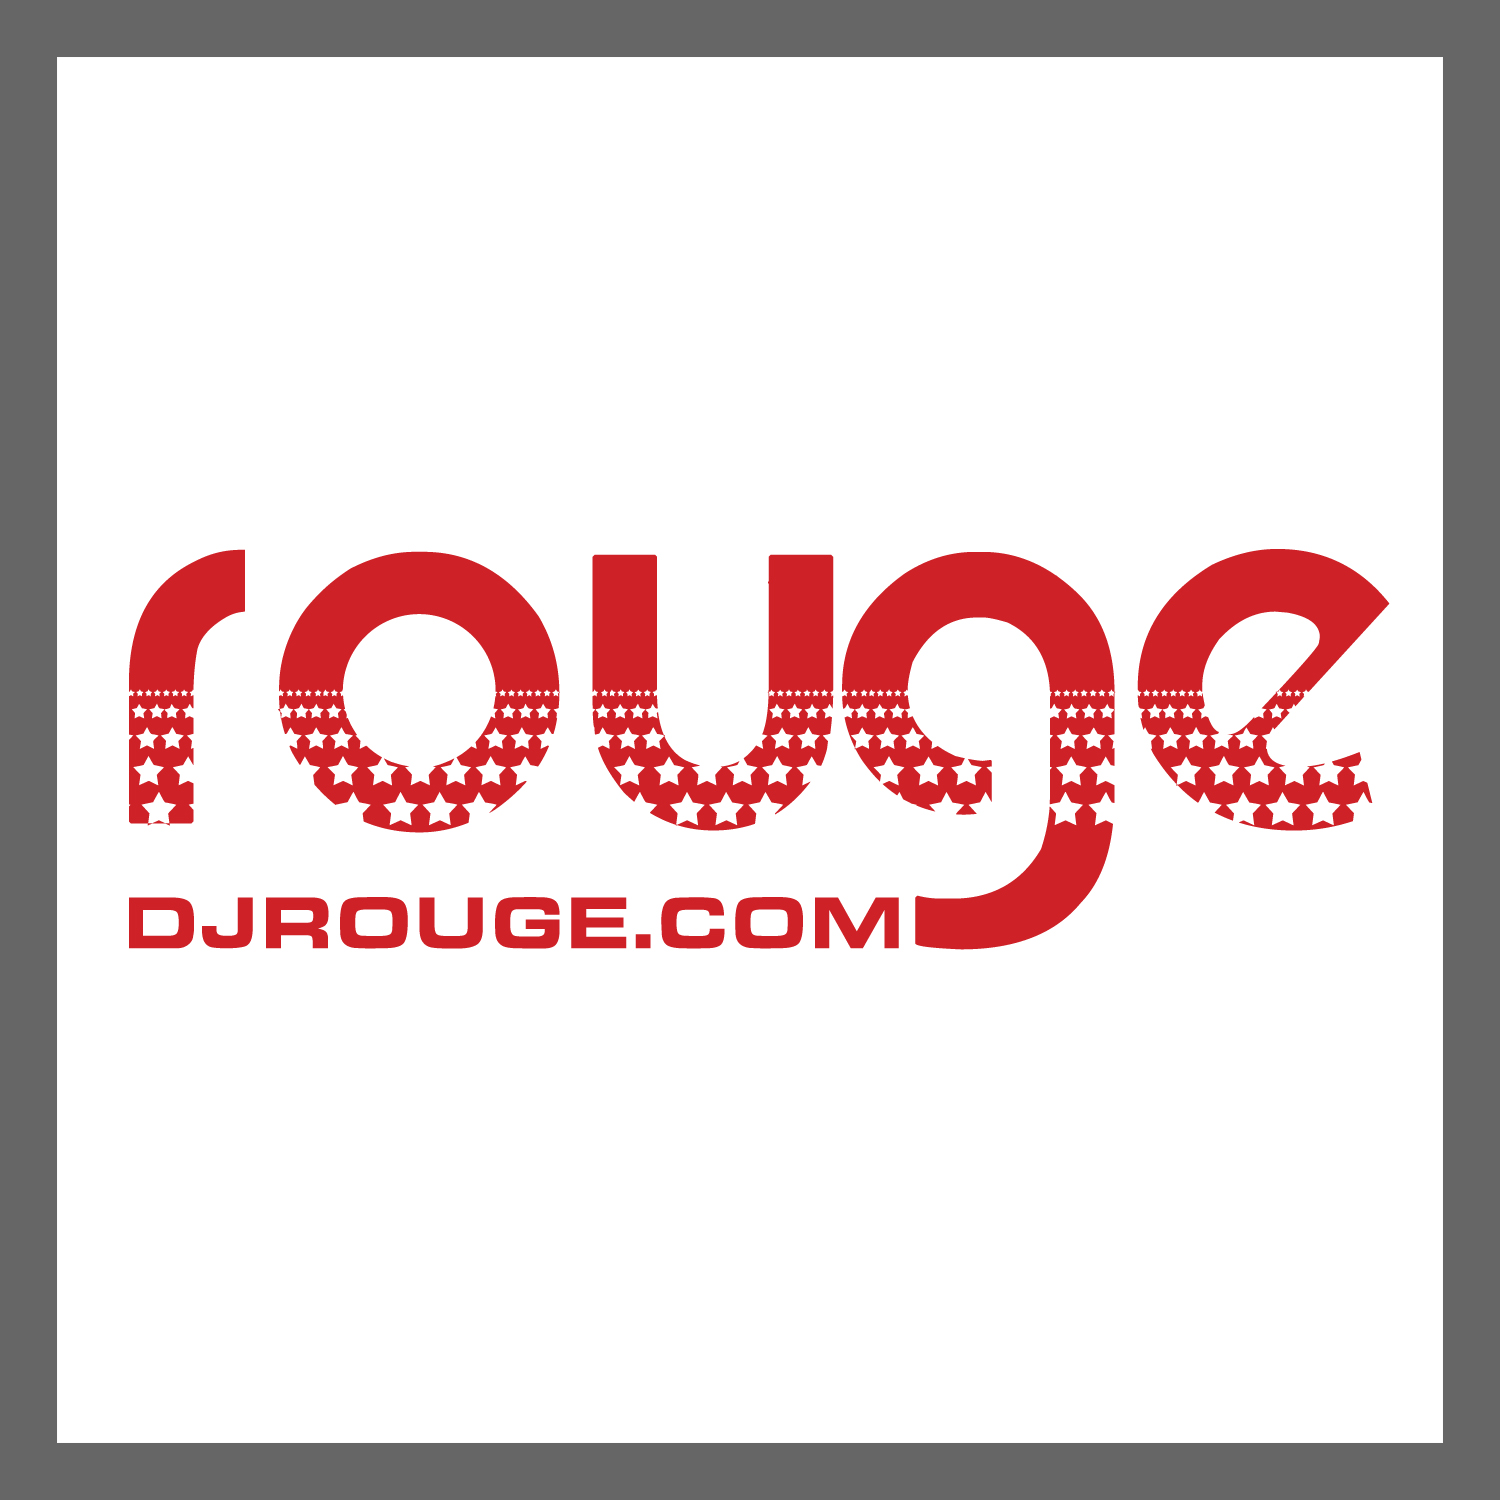 DJ ROUGE - MONTREAL DJ - CORPORATE DJ & WEDDING DJ [MONTREAL, QC]